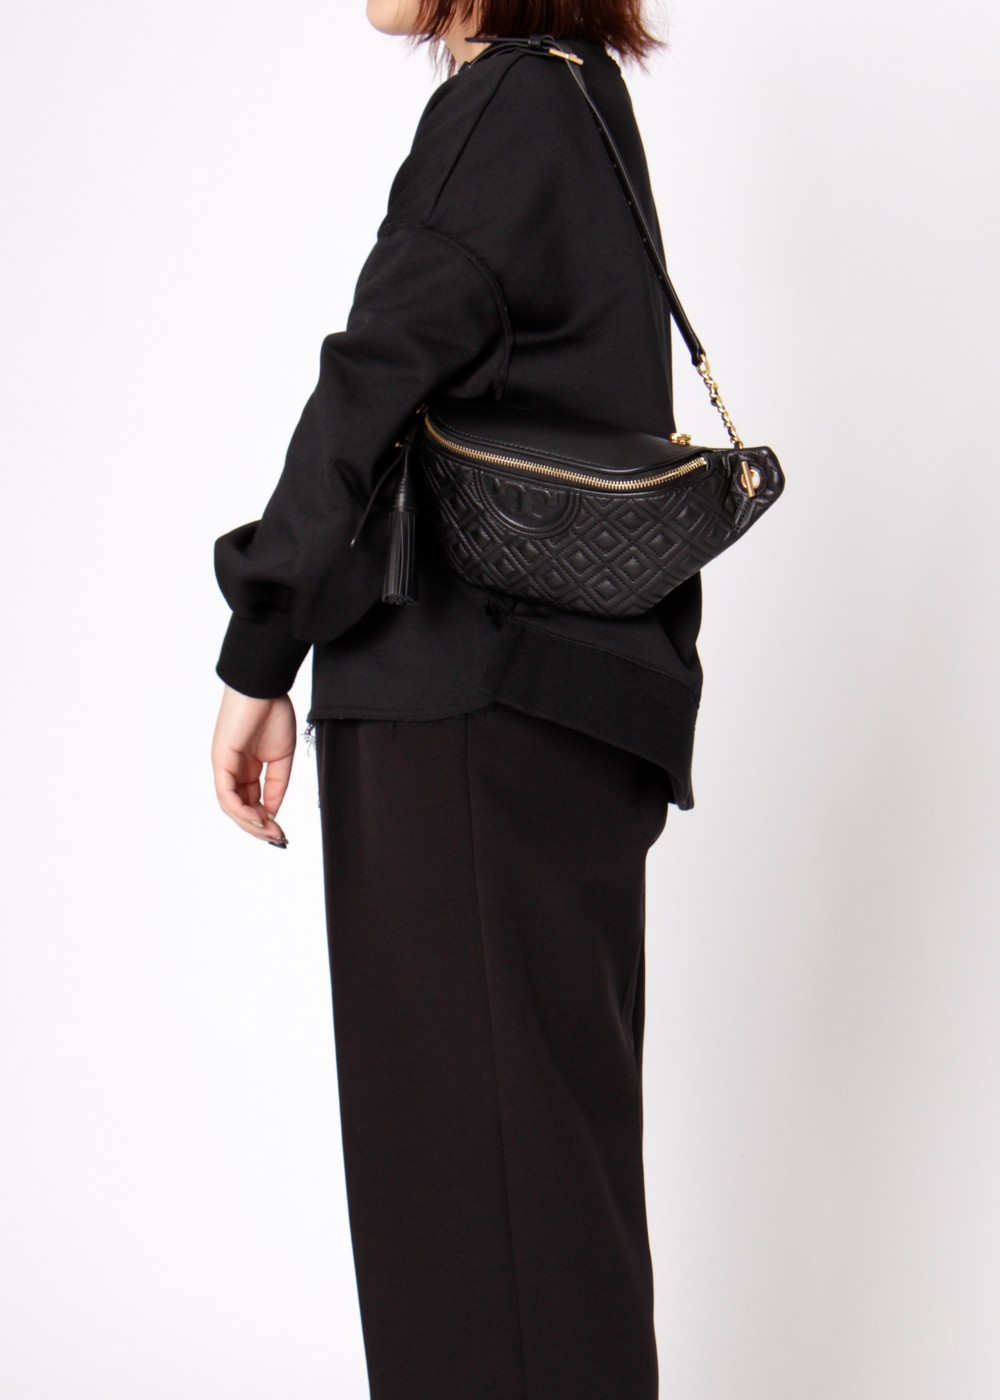 【最大40%OFF】【3/20入荷】FLEMING BELT BAG|BLACK|ウエストポーチ|Tory Burch(TM)